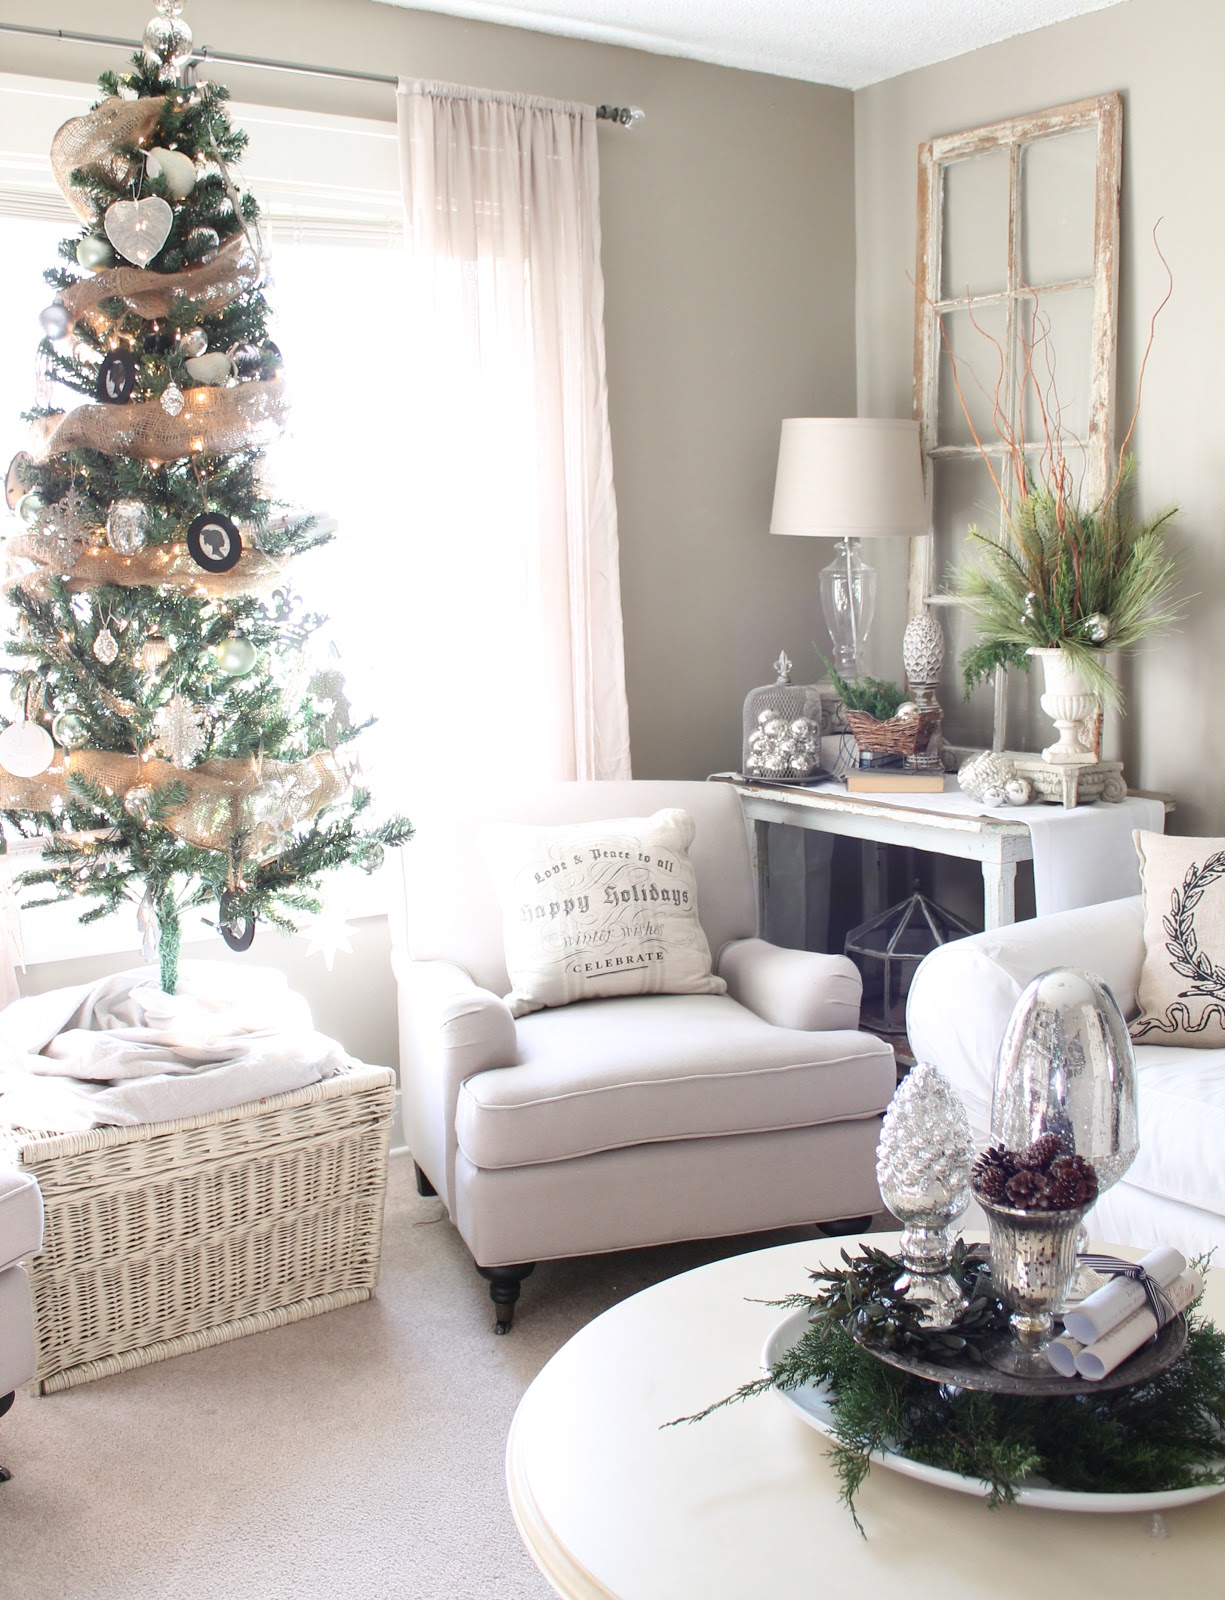 12th and white our christmas living room part 2 - How to decorate living room for christmas ...